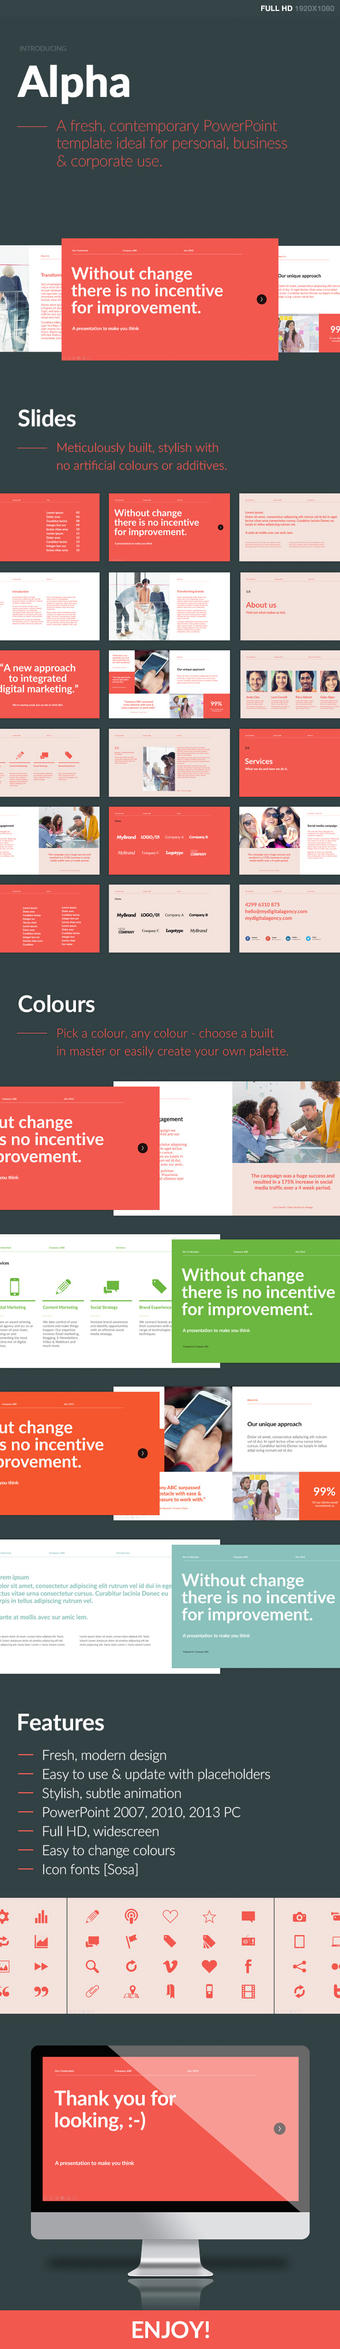 Alpha PowerPoint Template by dmx005